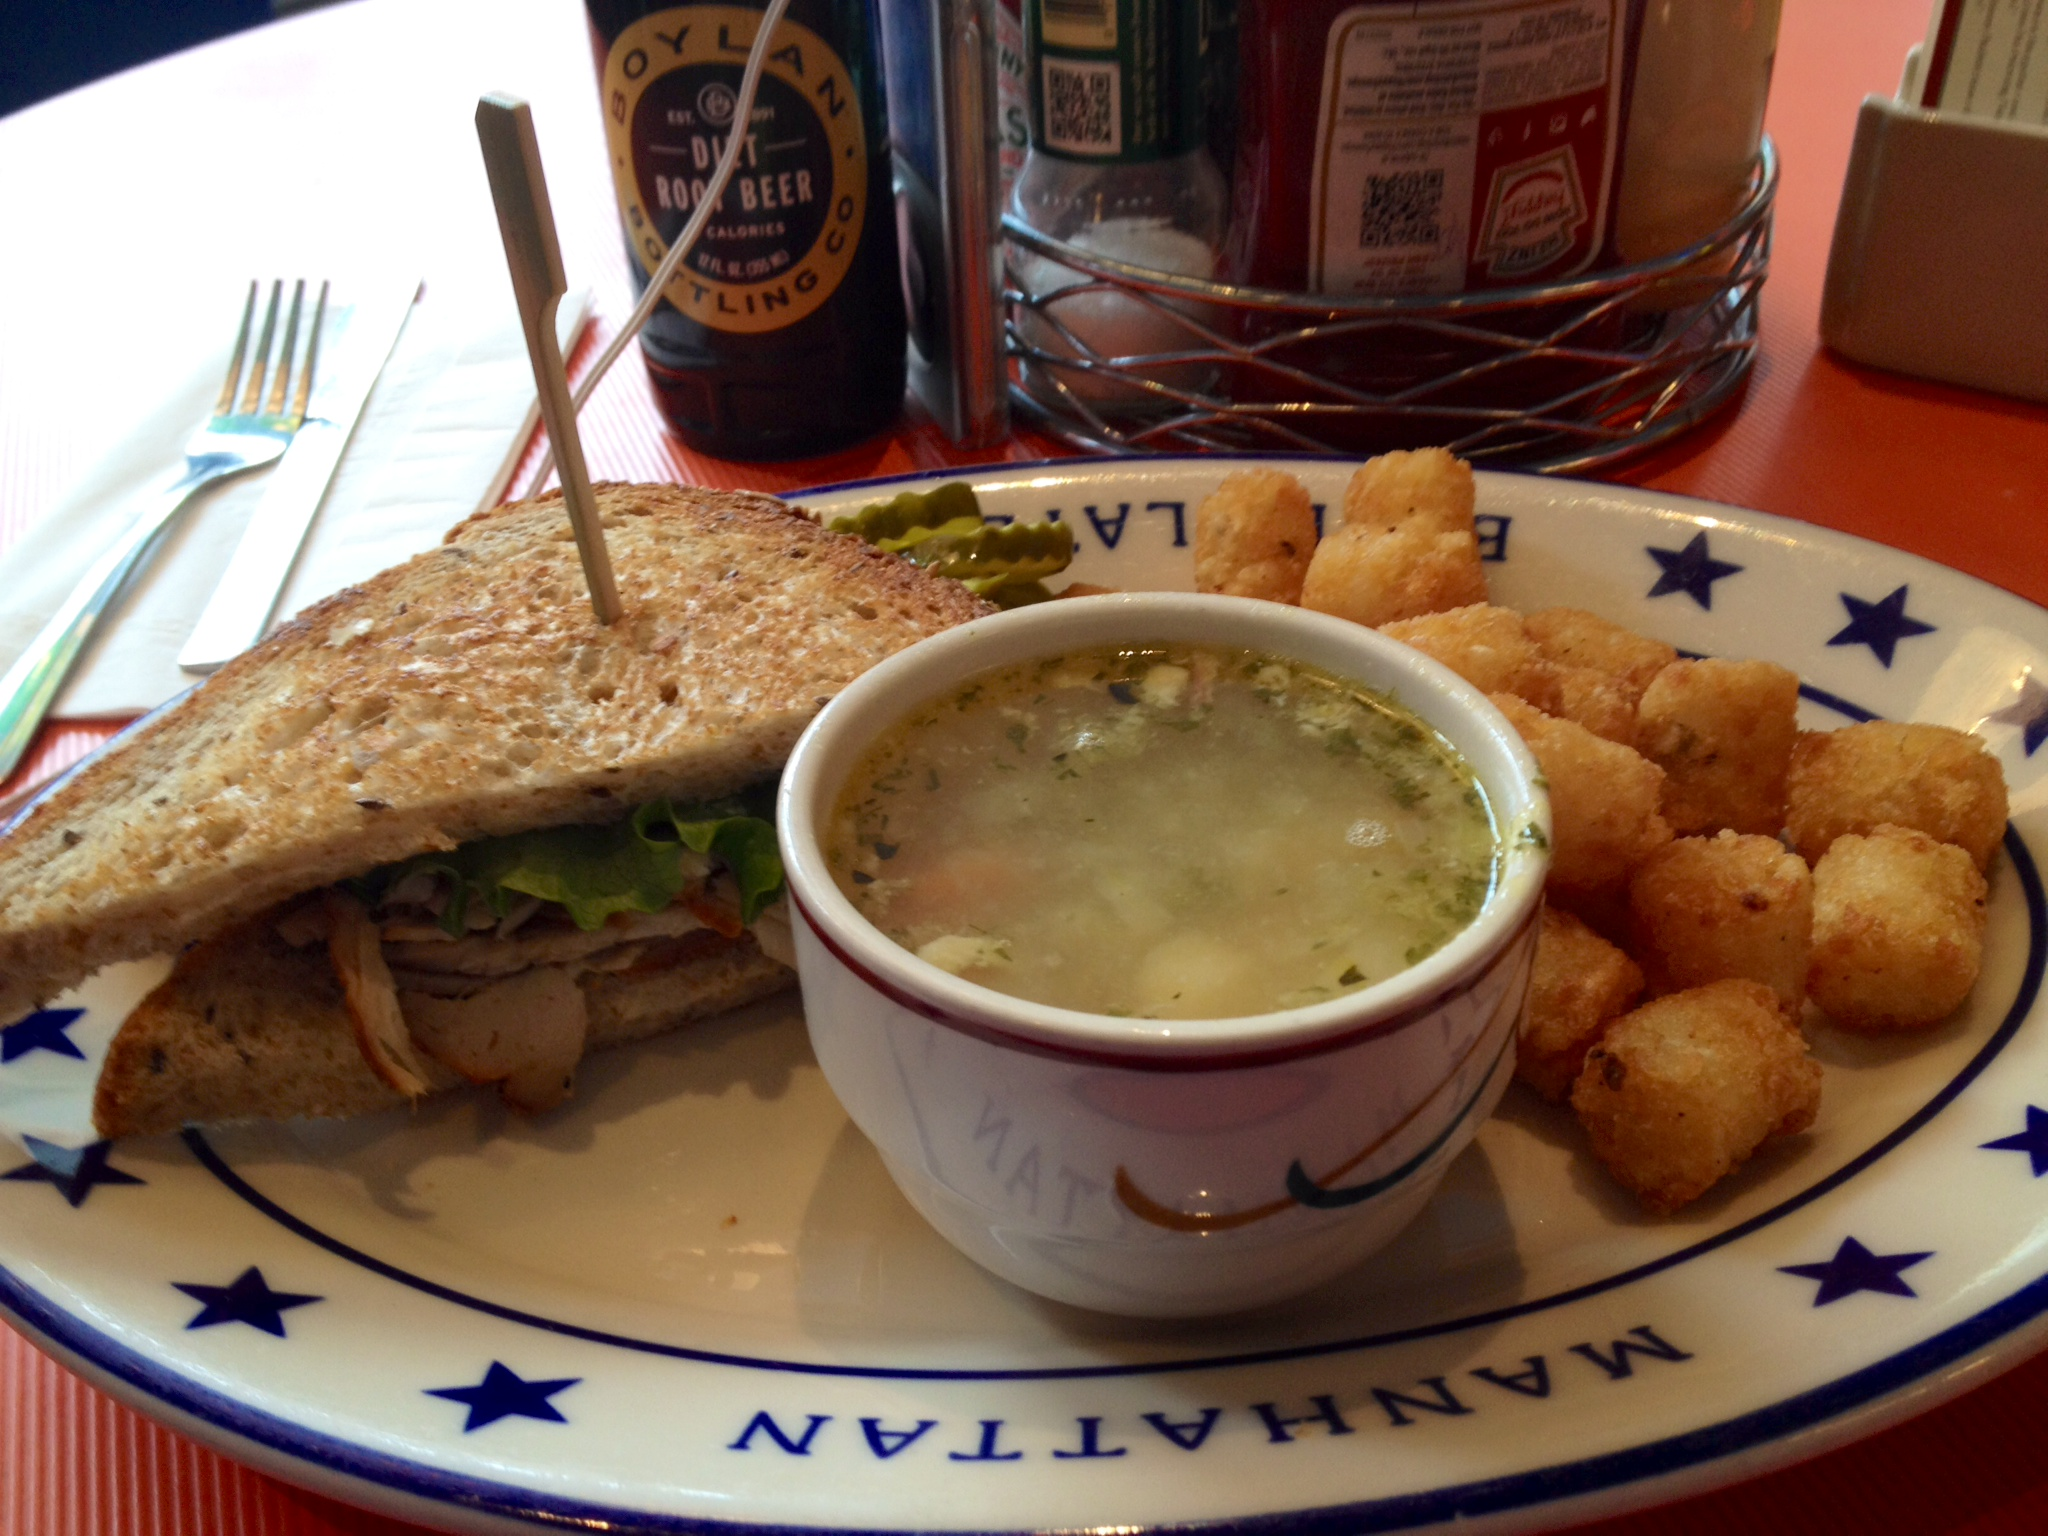 Soup, Sandwich, and Tots